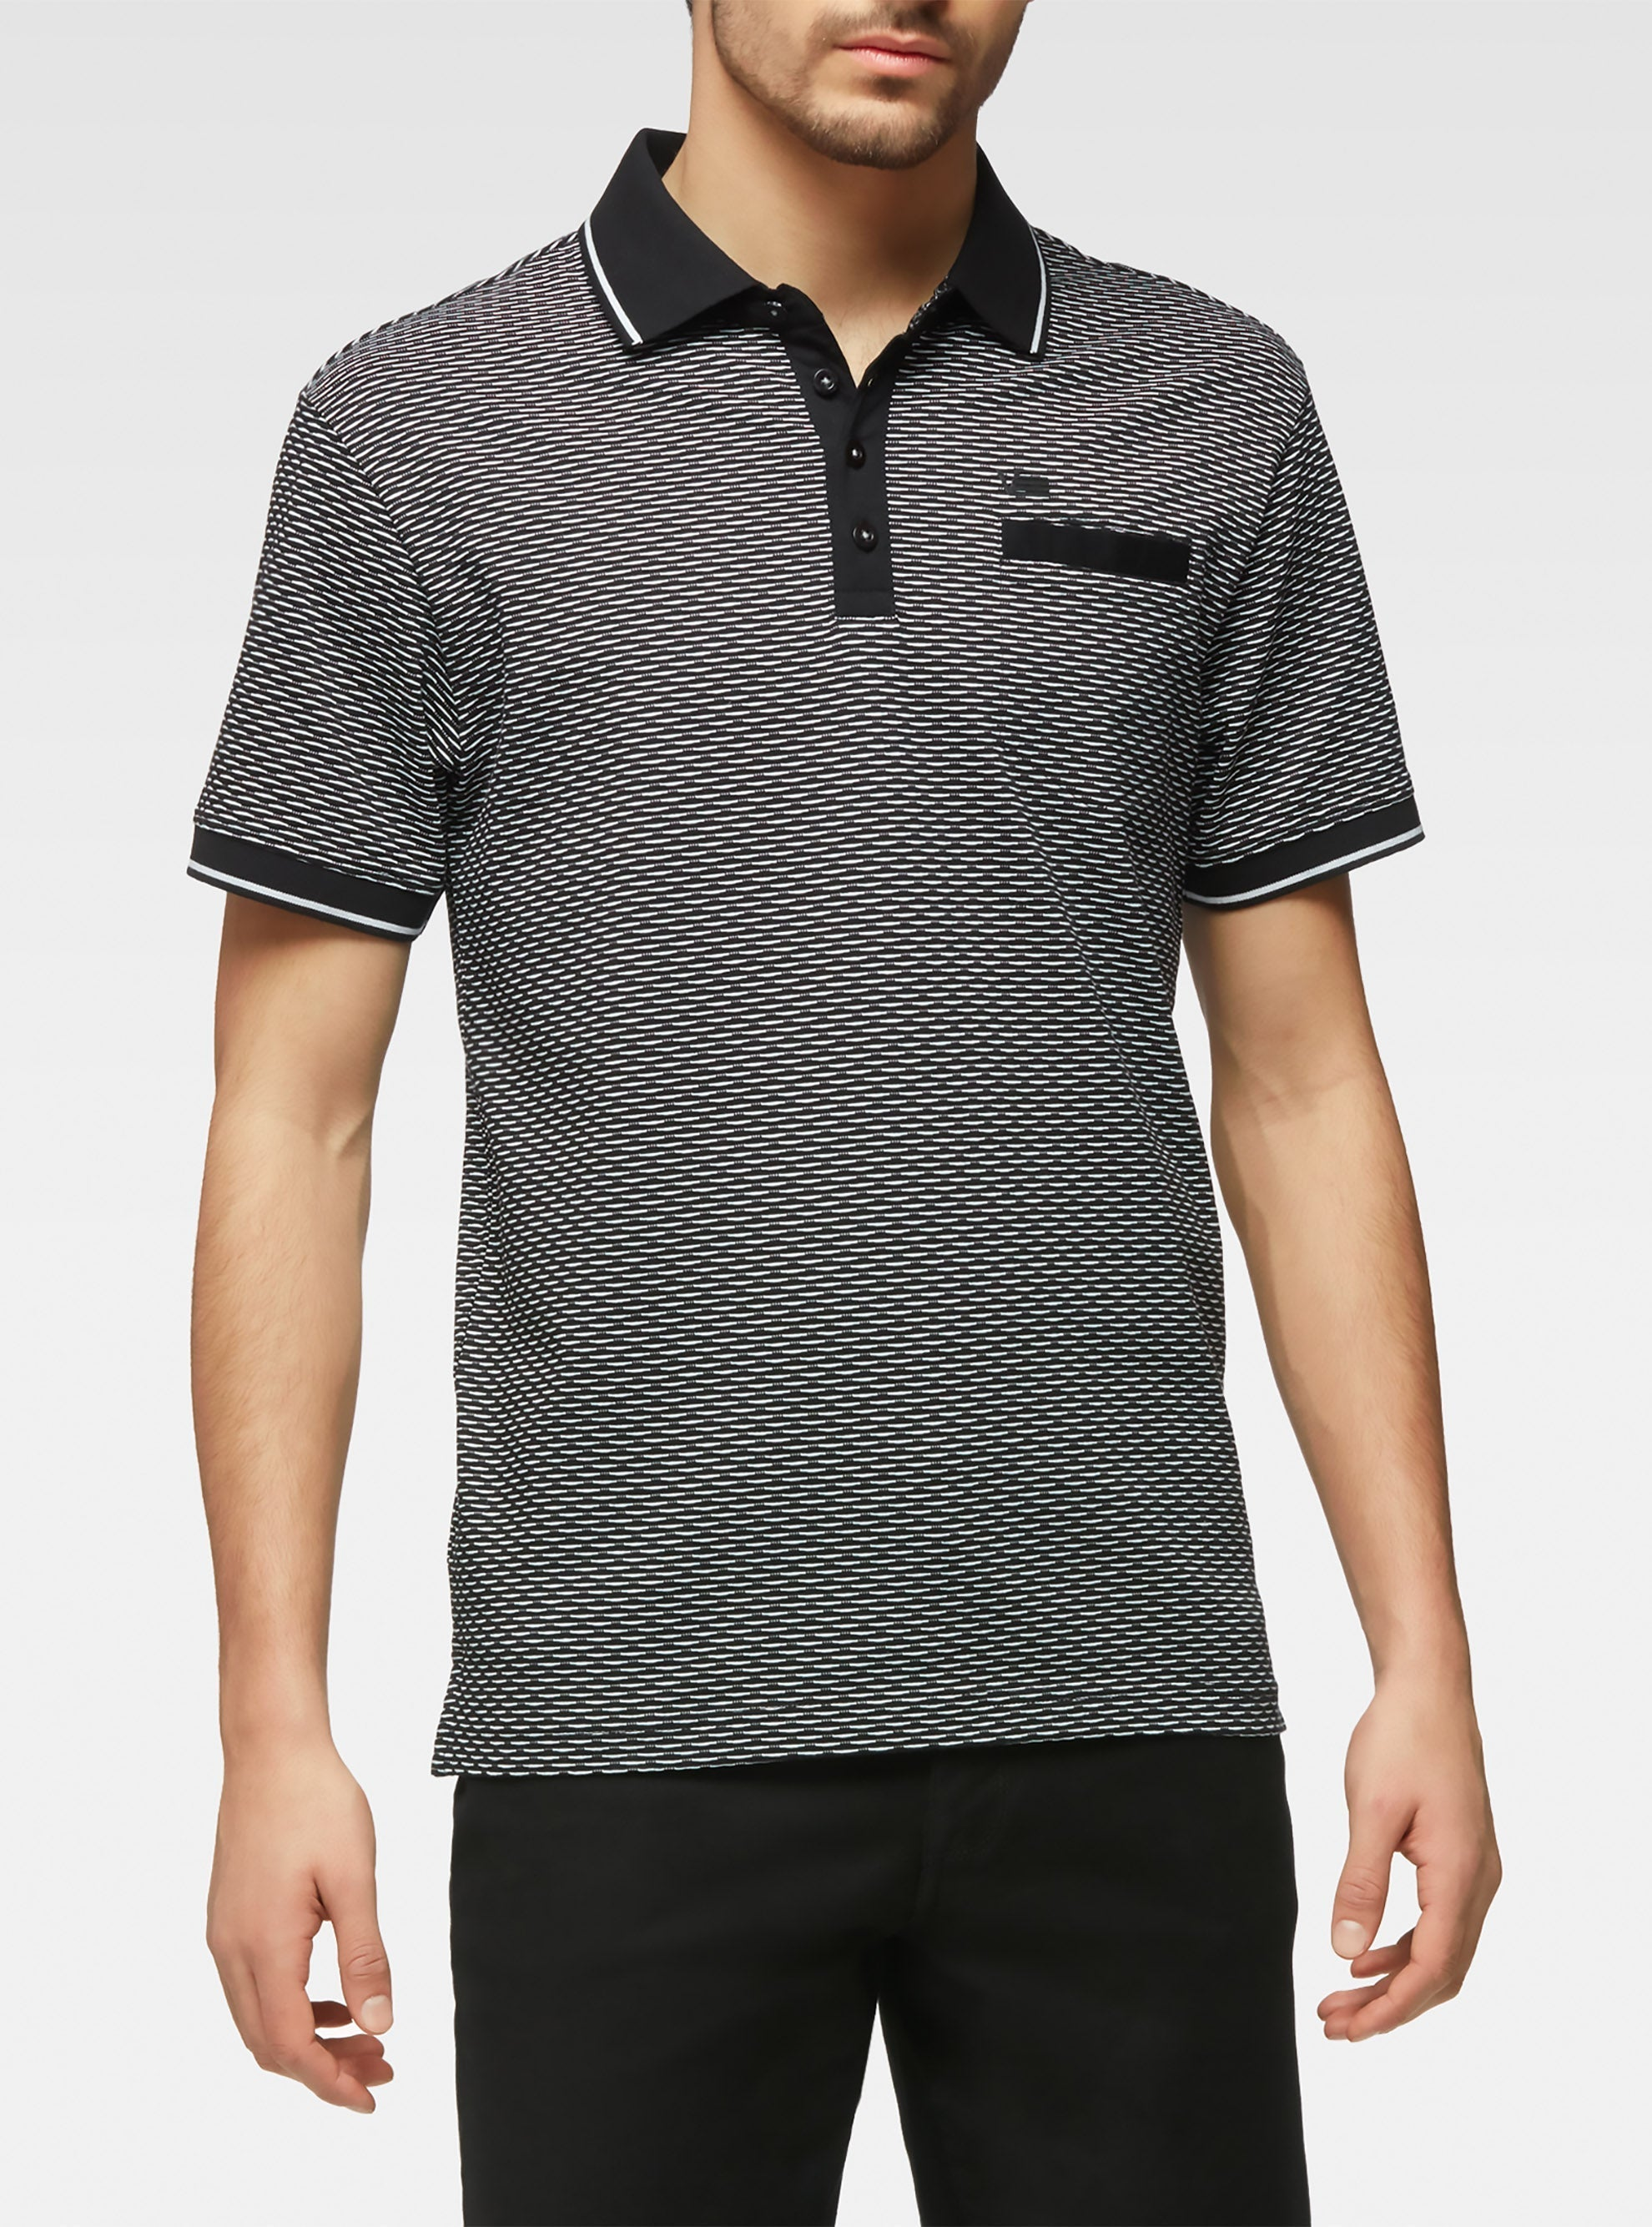 Short-sleeved polo shirt with mosaic diamond pattern black